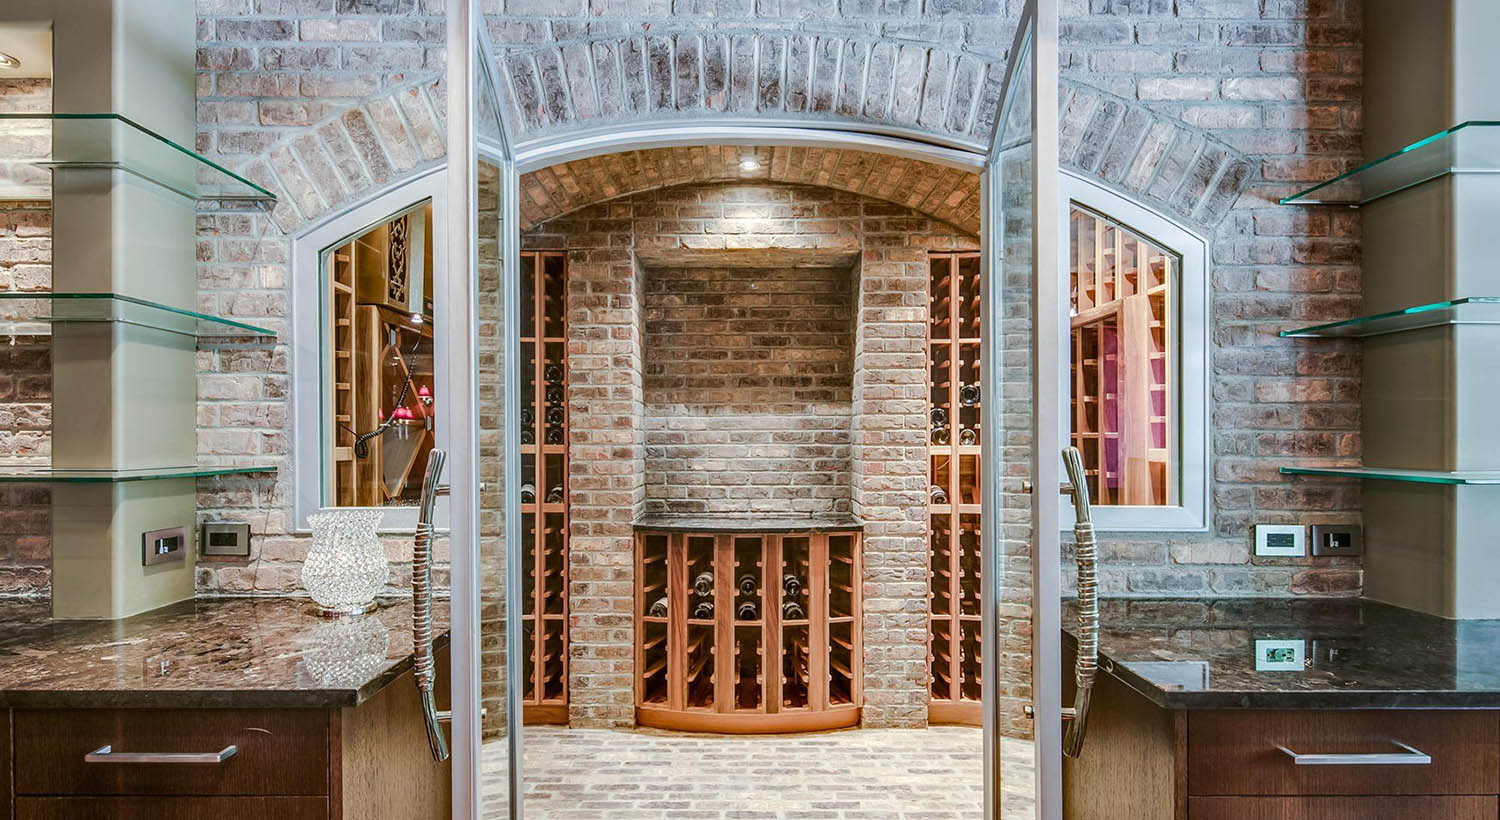 beautiful wine room design glass shelves, red brick walls and wood shelves, glass doors